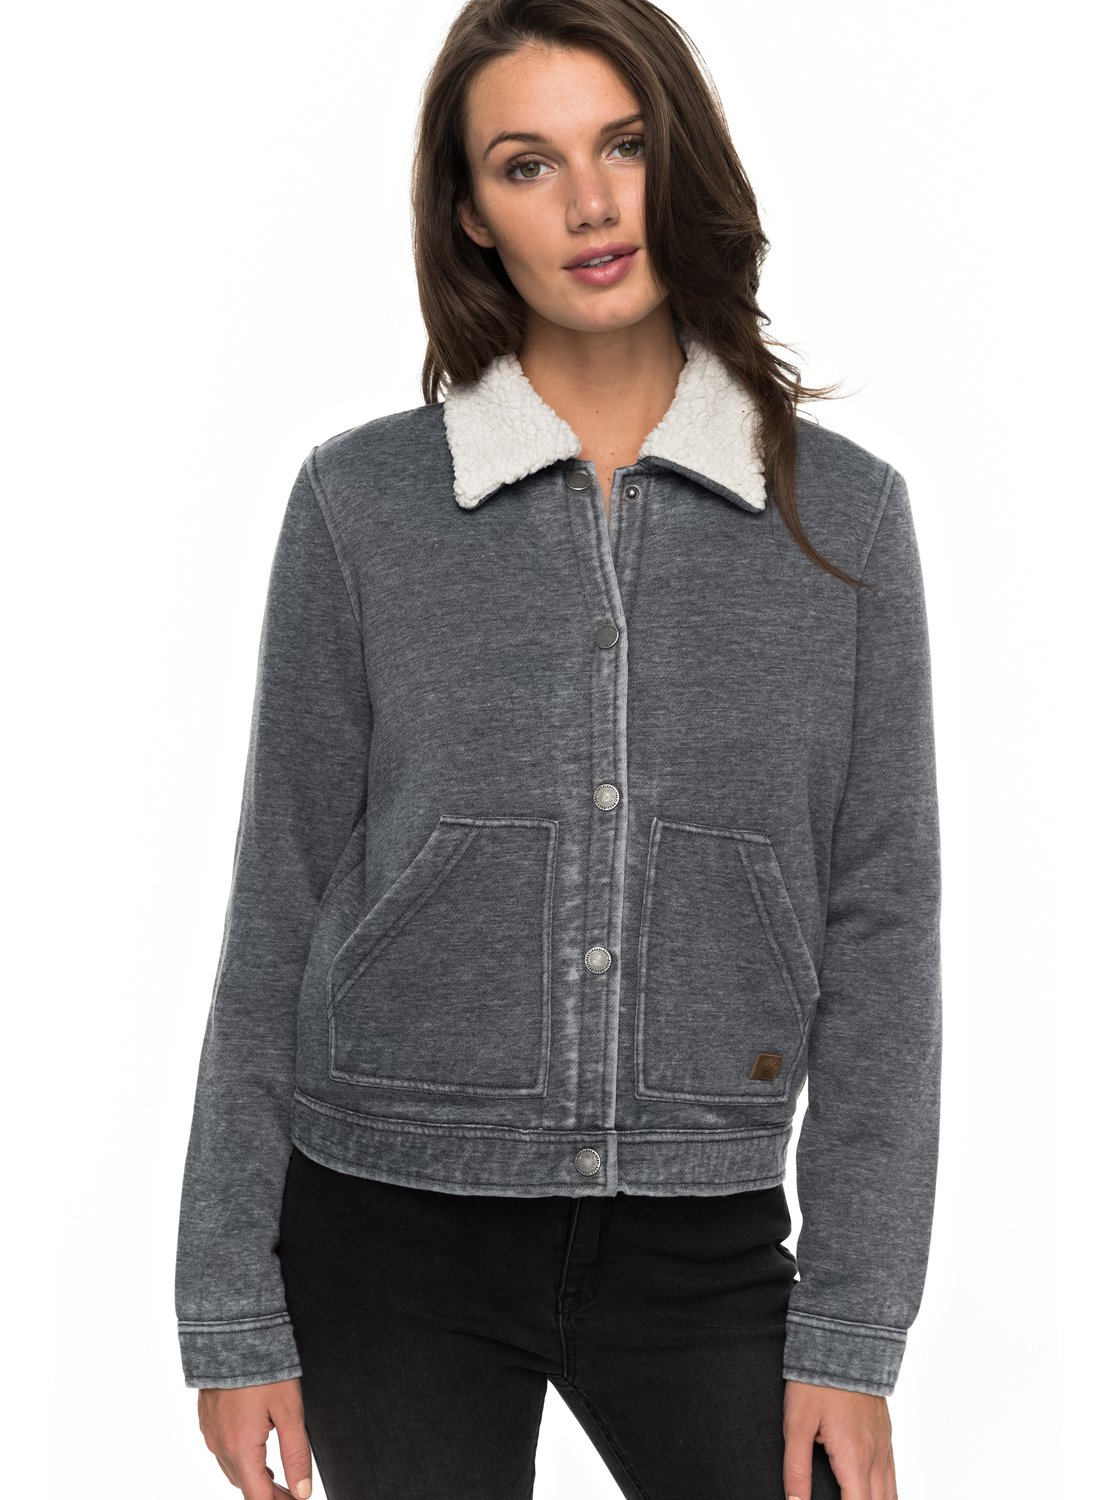 Forever Surfing - Chaqueta de Jersey para Mujer Roxy